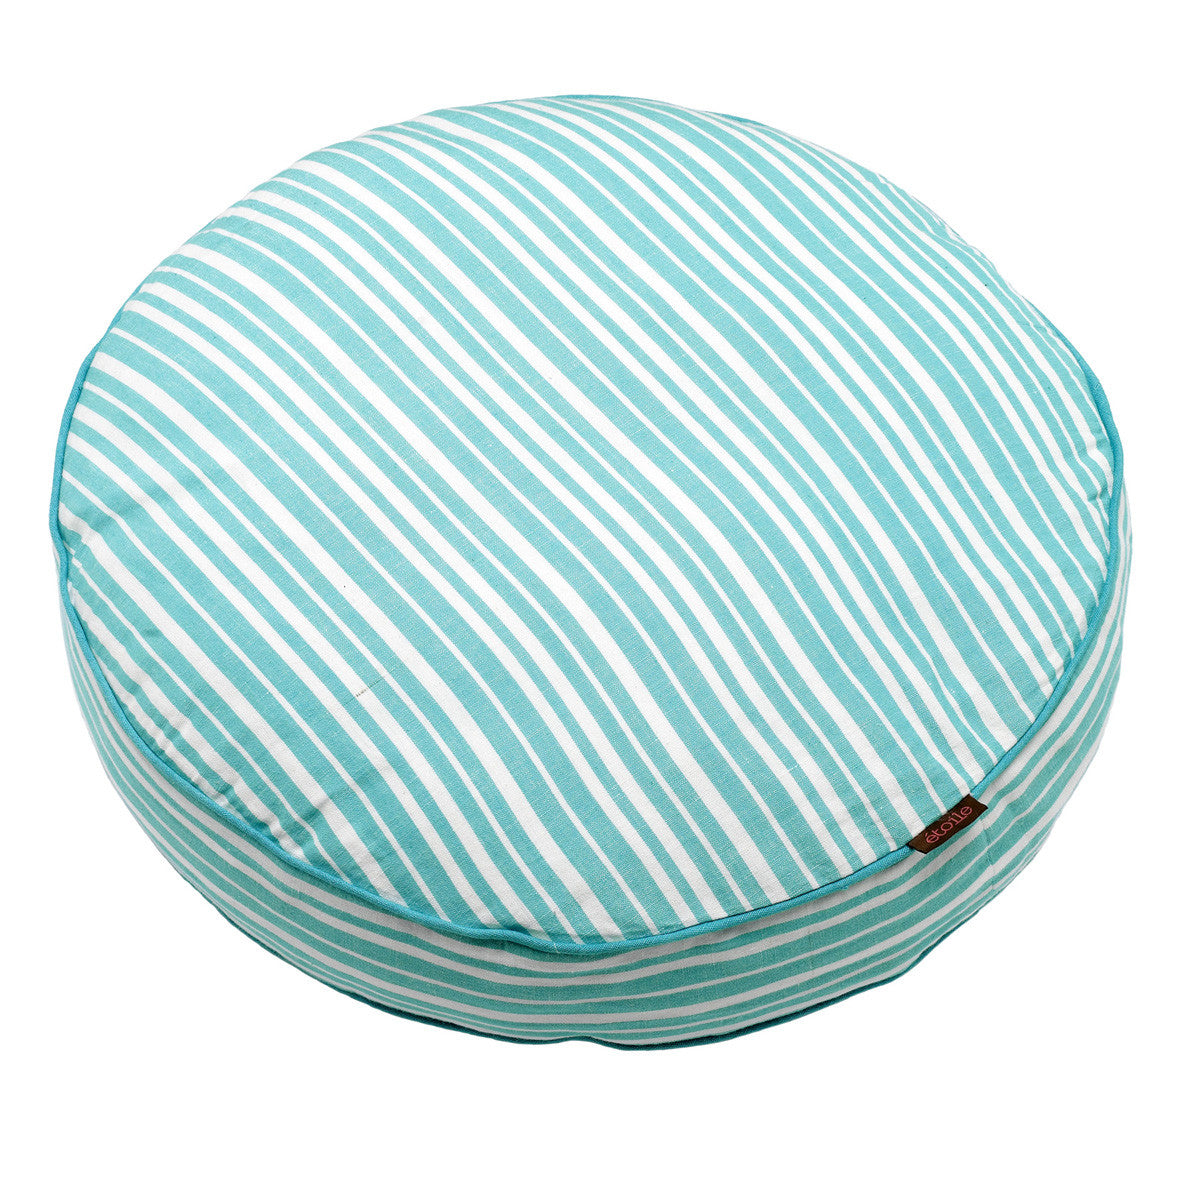 Palermo Ticking Stripe Round Cotton Linen Floor Cushion in Pacific Turquoise Blue 48cm diameter